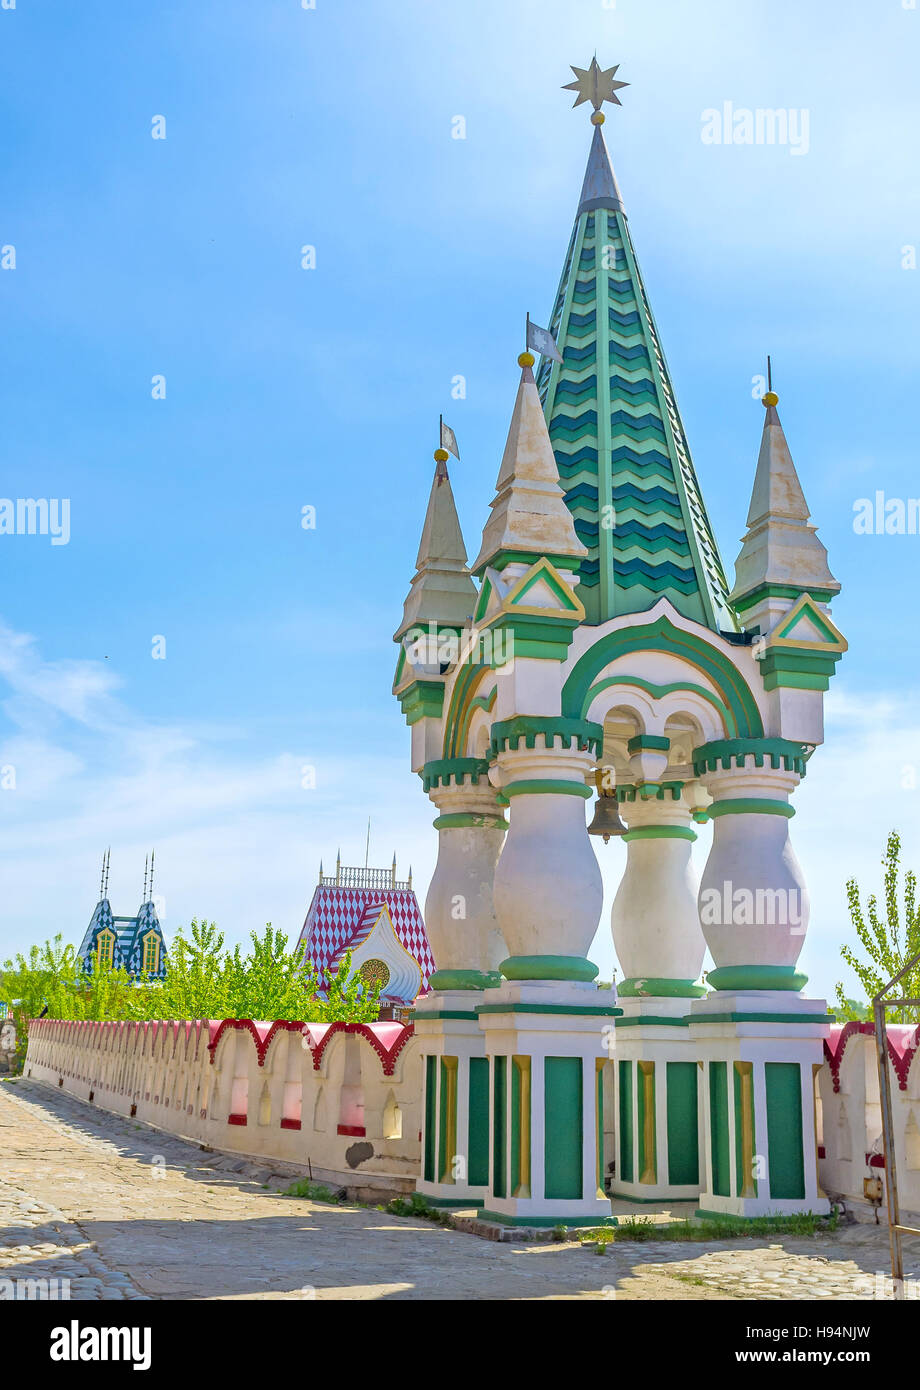 The small green tower, topped with the golden star, has colorful conical roof, figured pillars and located at the - Stock Image